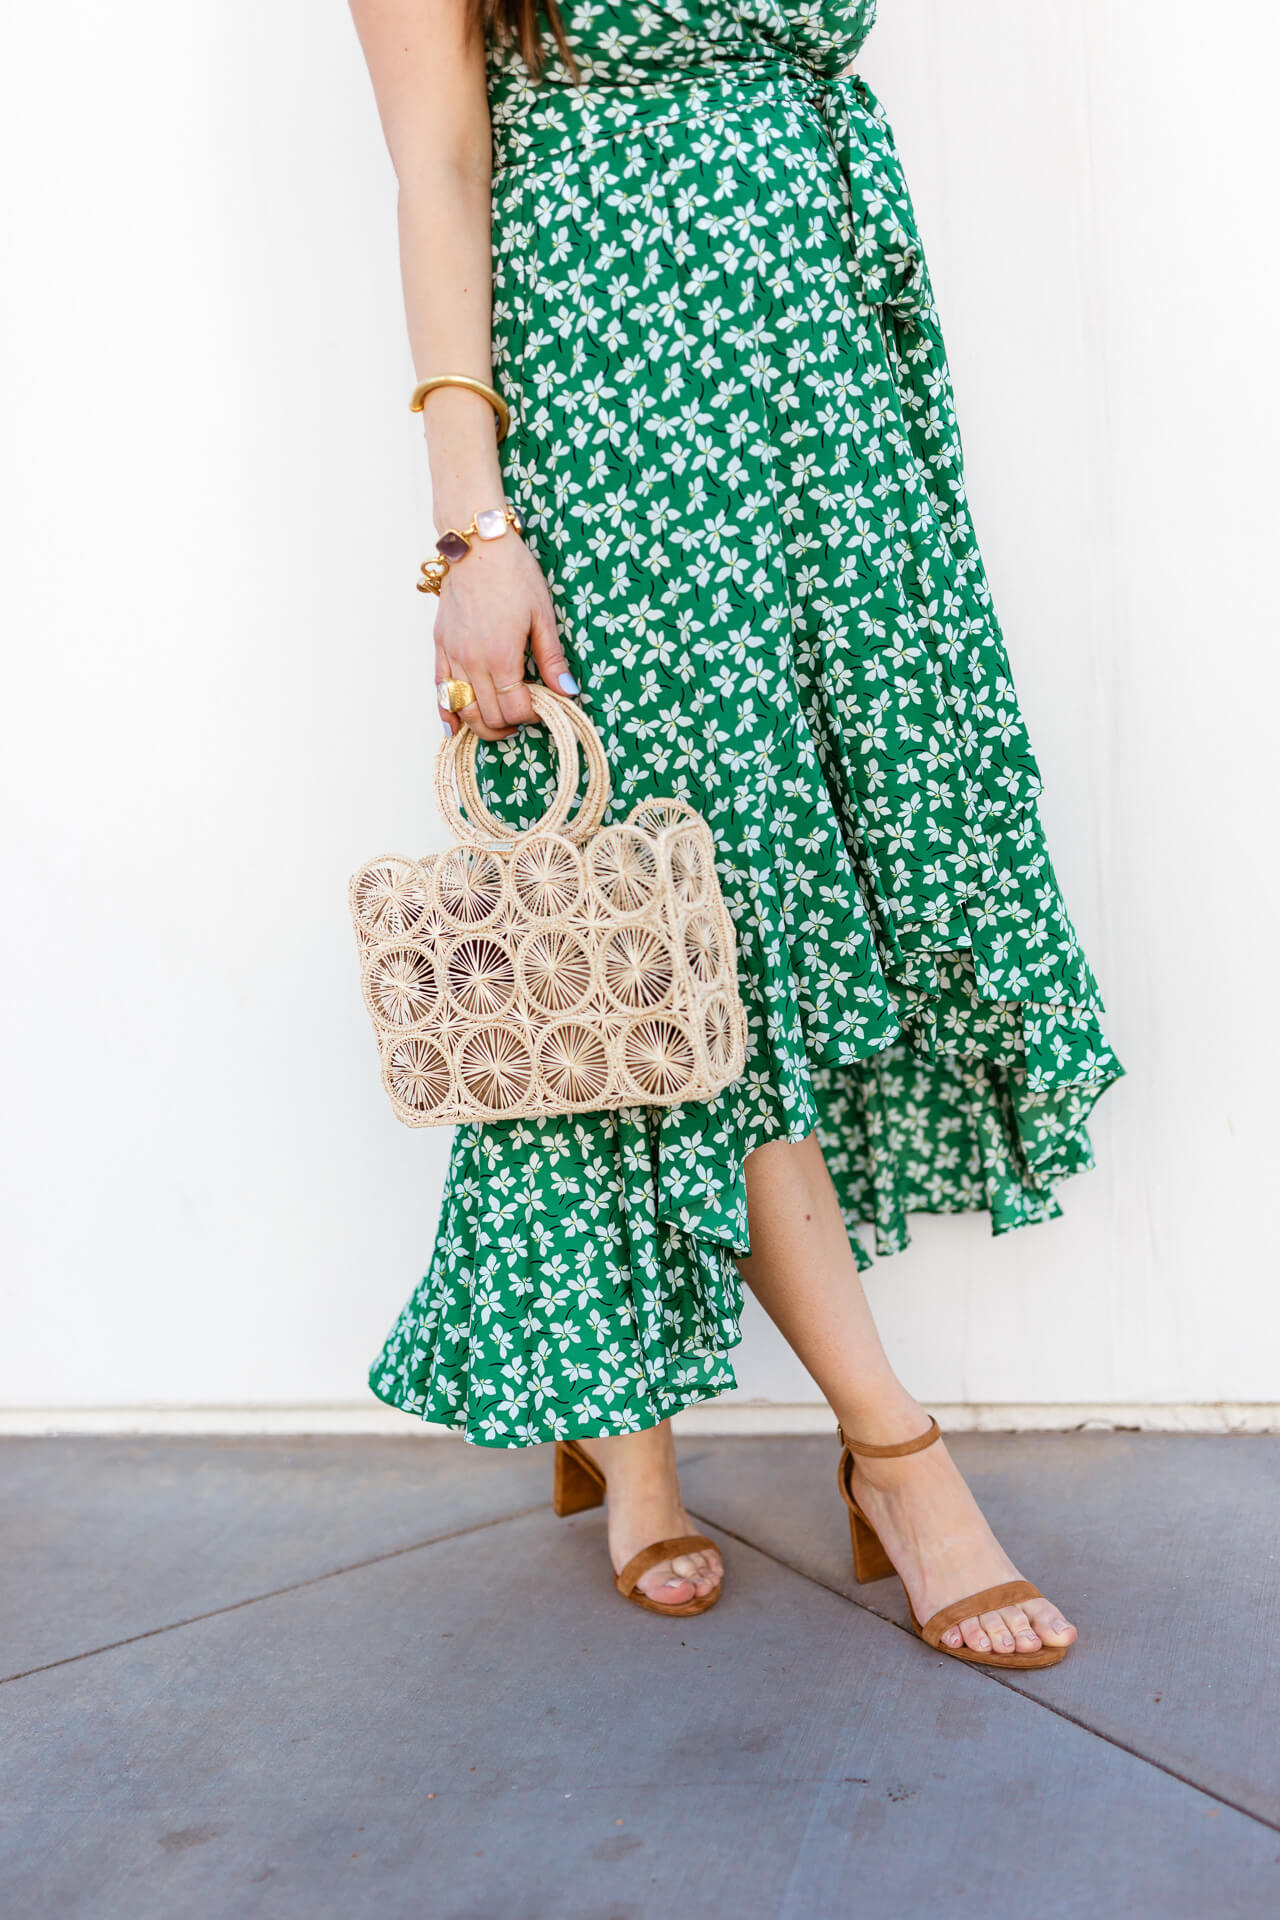 A fun straw bag with a floral pattern! - M Loves M @marmar